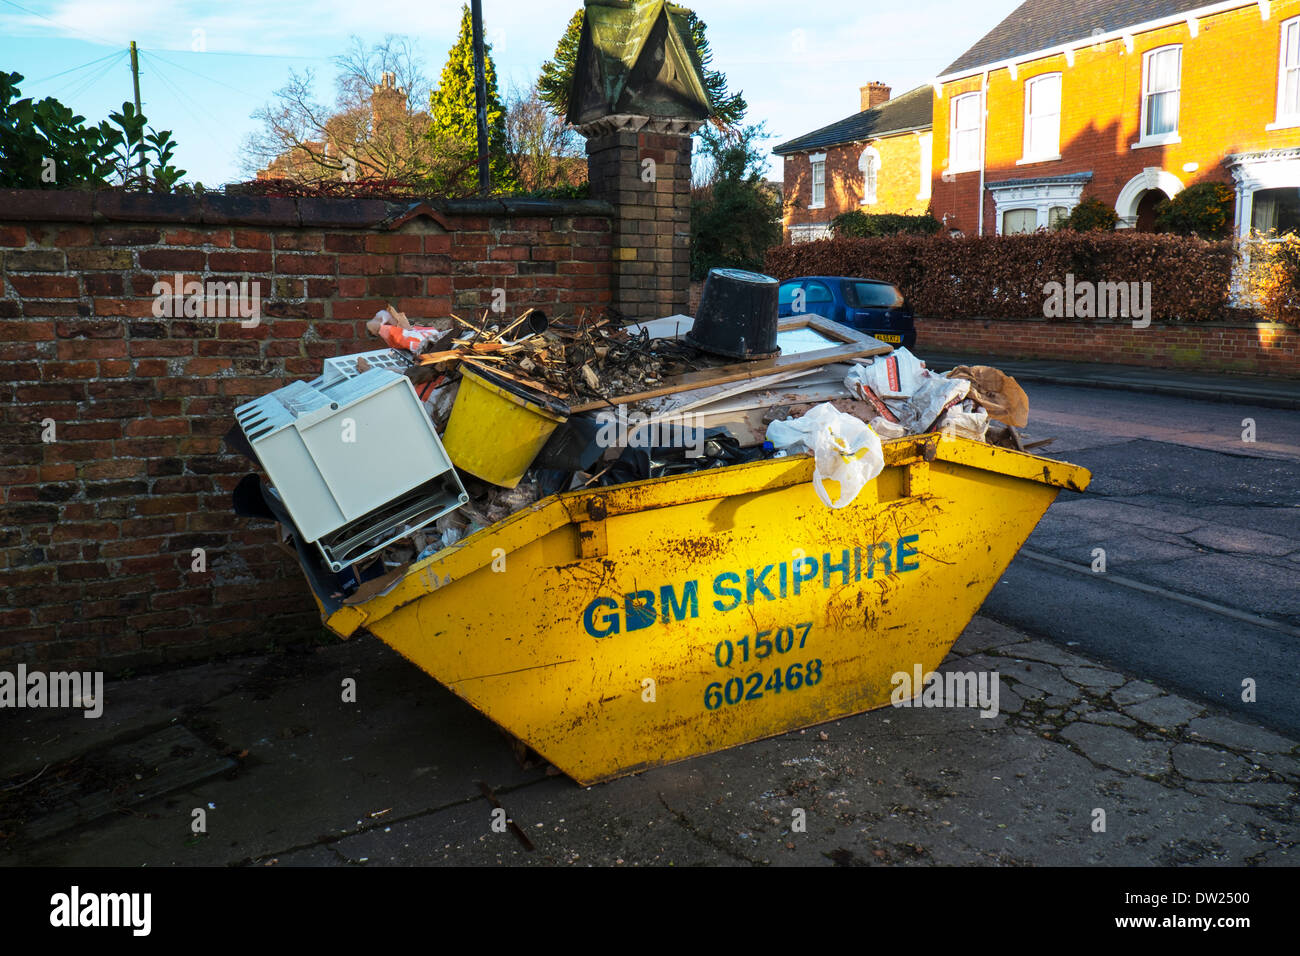 Skip full of rubbish hire removal service Louth town Lincolnshire England UK GB - Stock Image